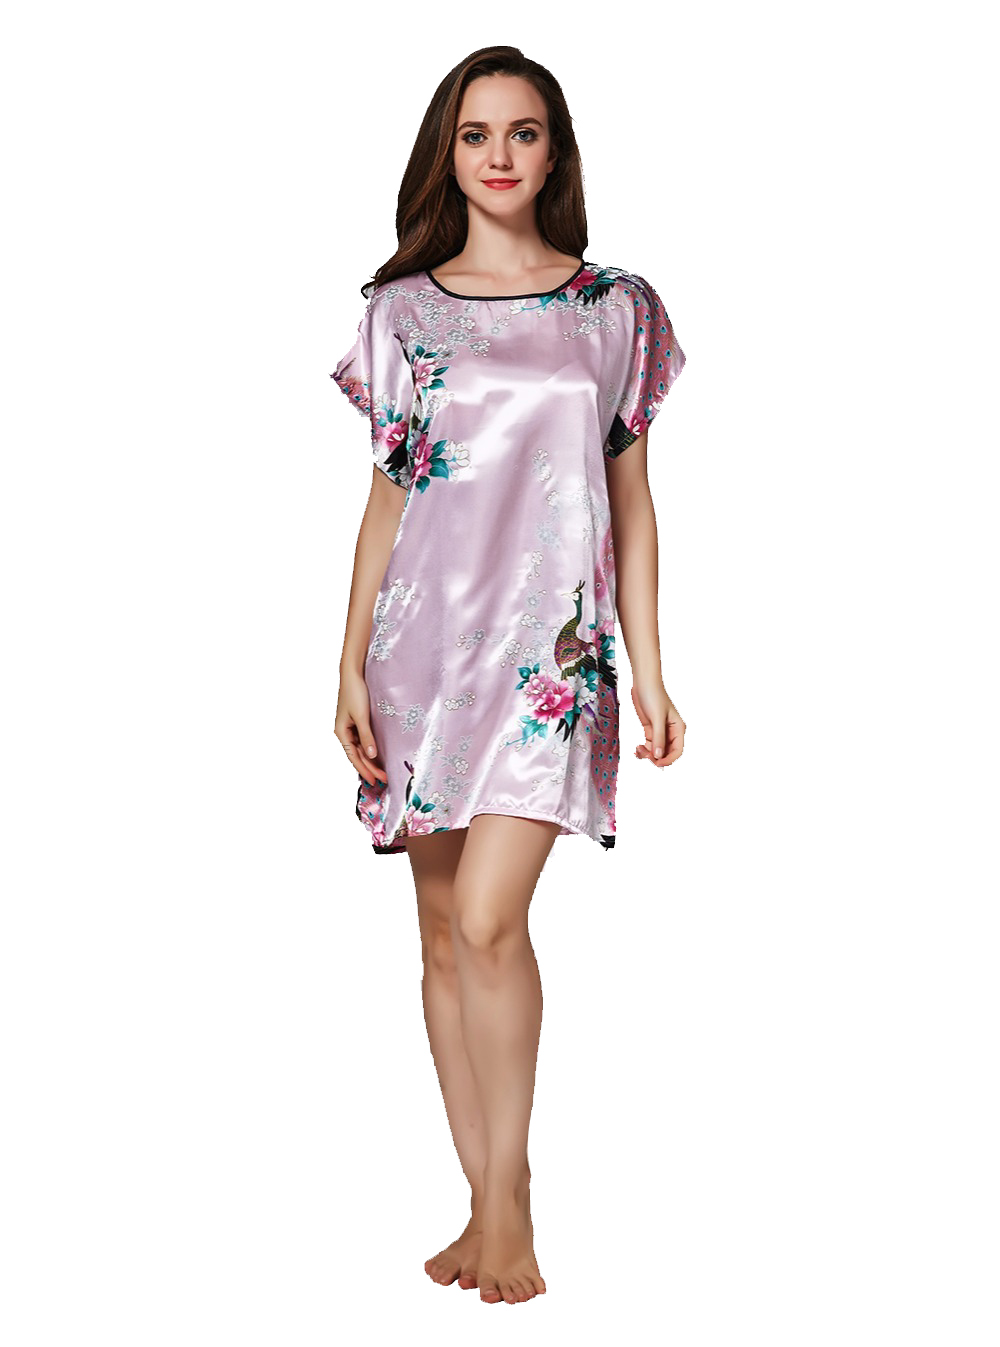 Women Sleepwear Silk gowns Dress Nightgown Peacock Flower Nightdress ... 5d59faa3c